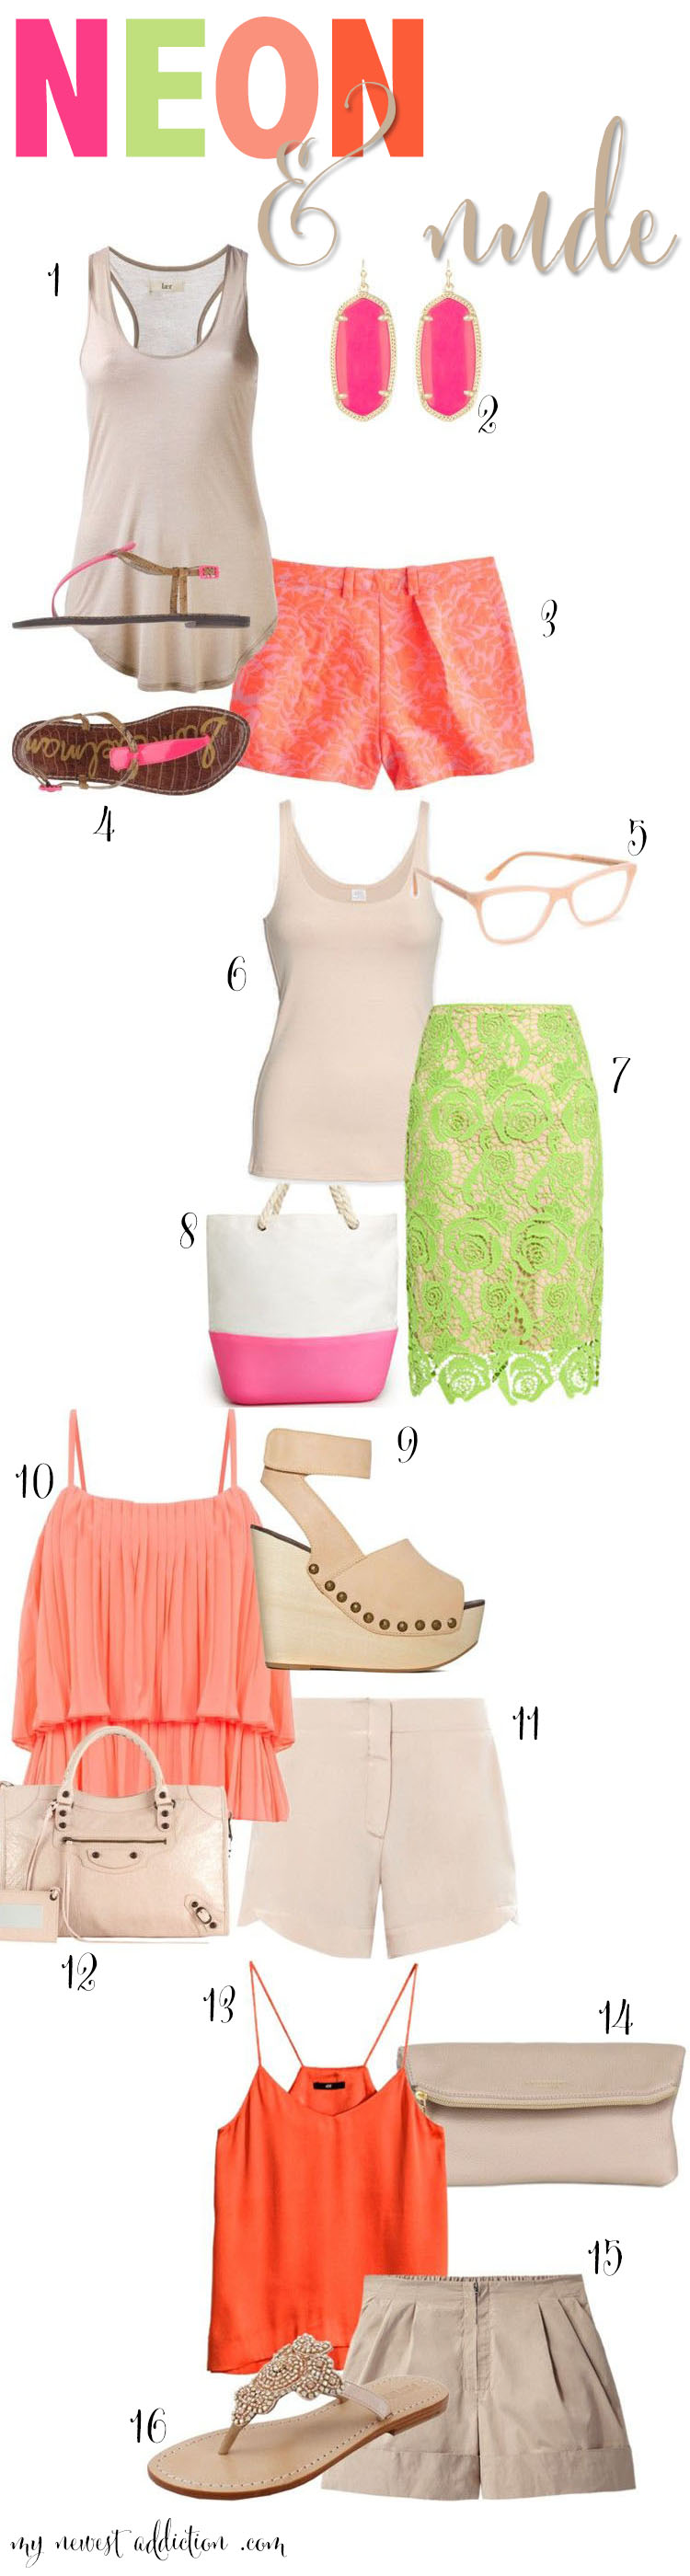 neon and nude summer trends